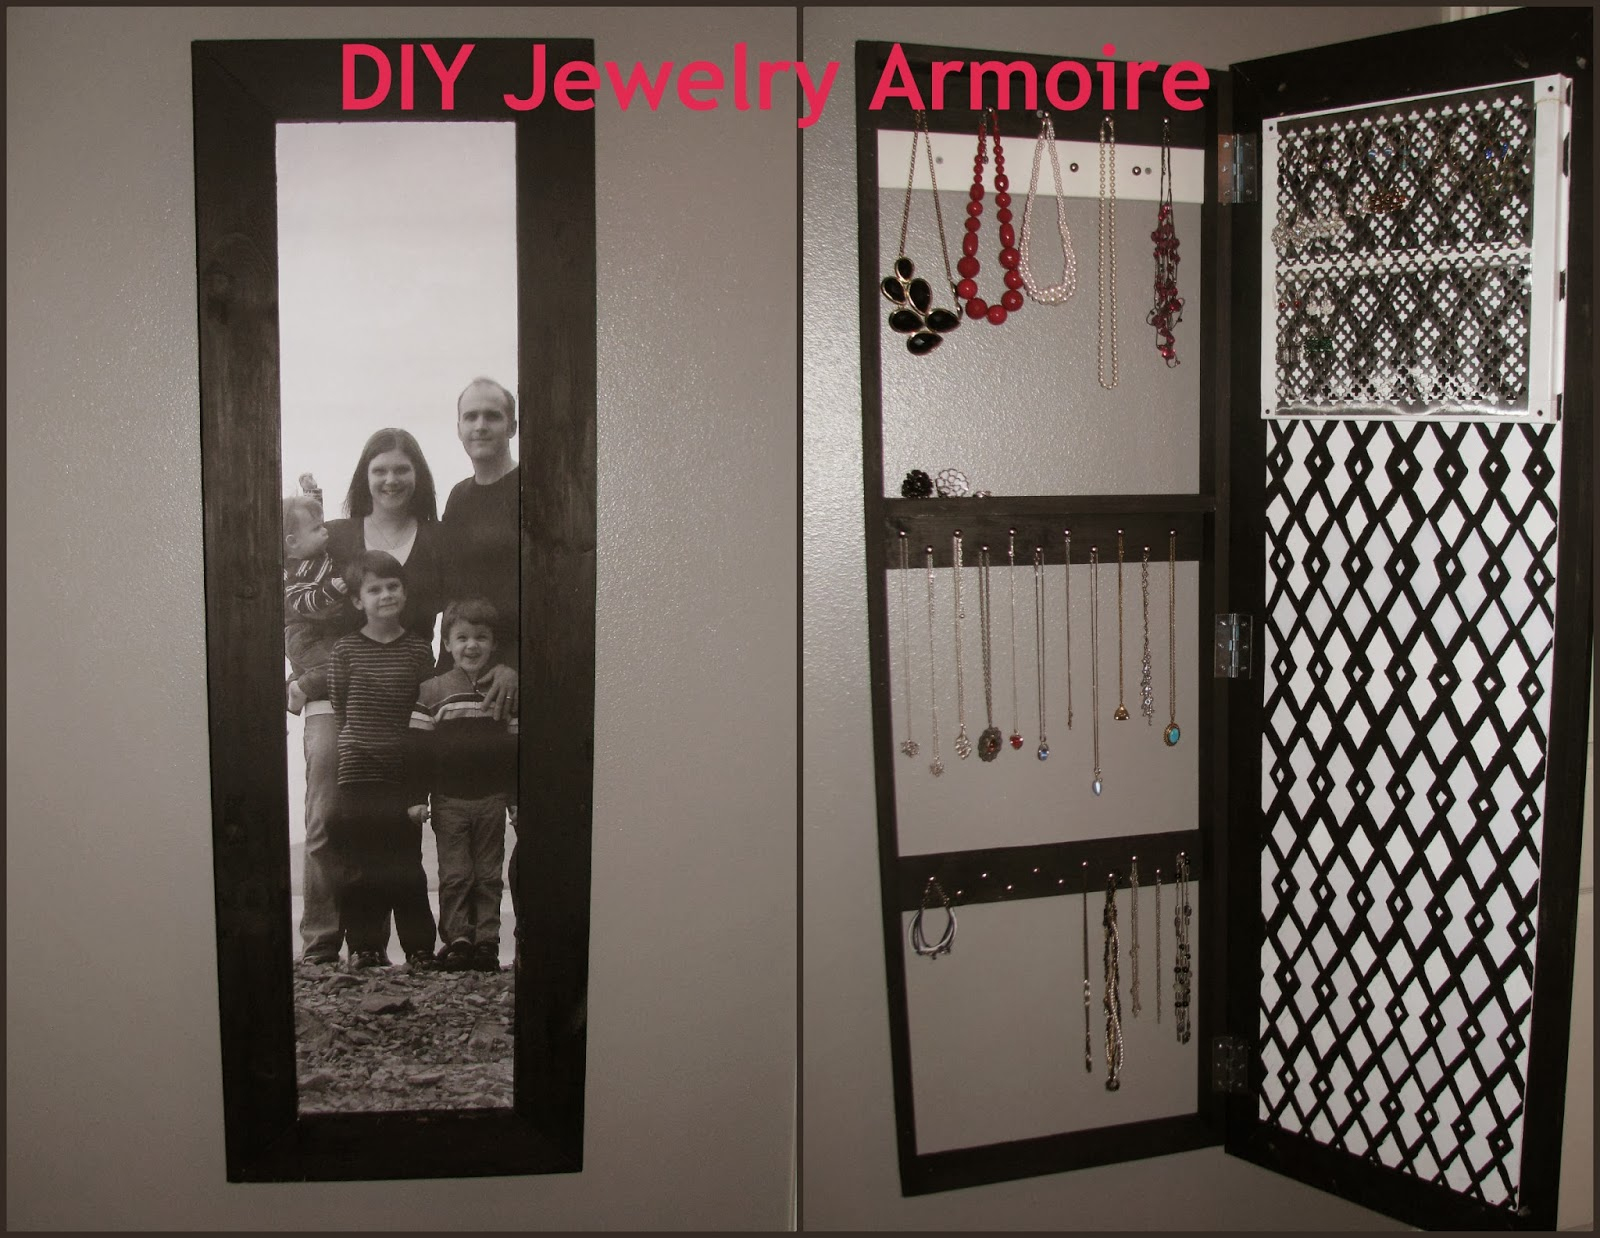 Superb DIY Jewelry Armoire